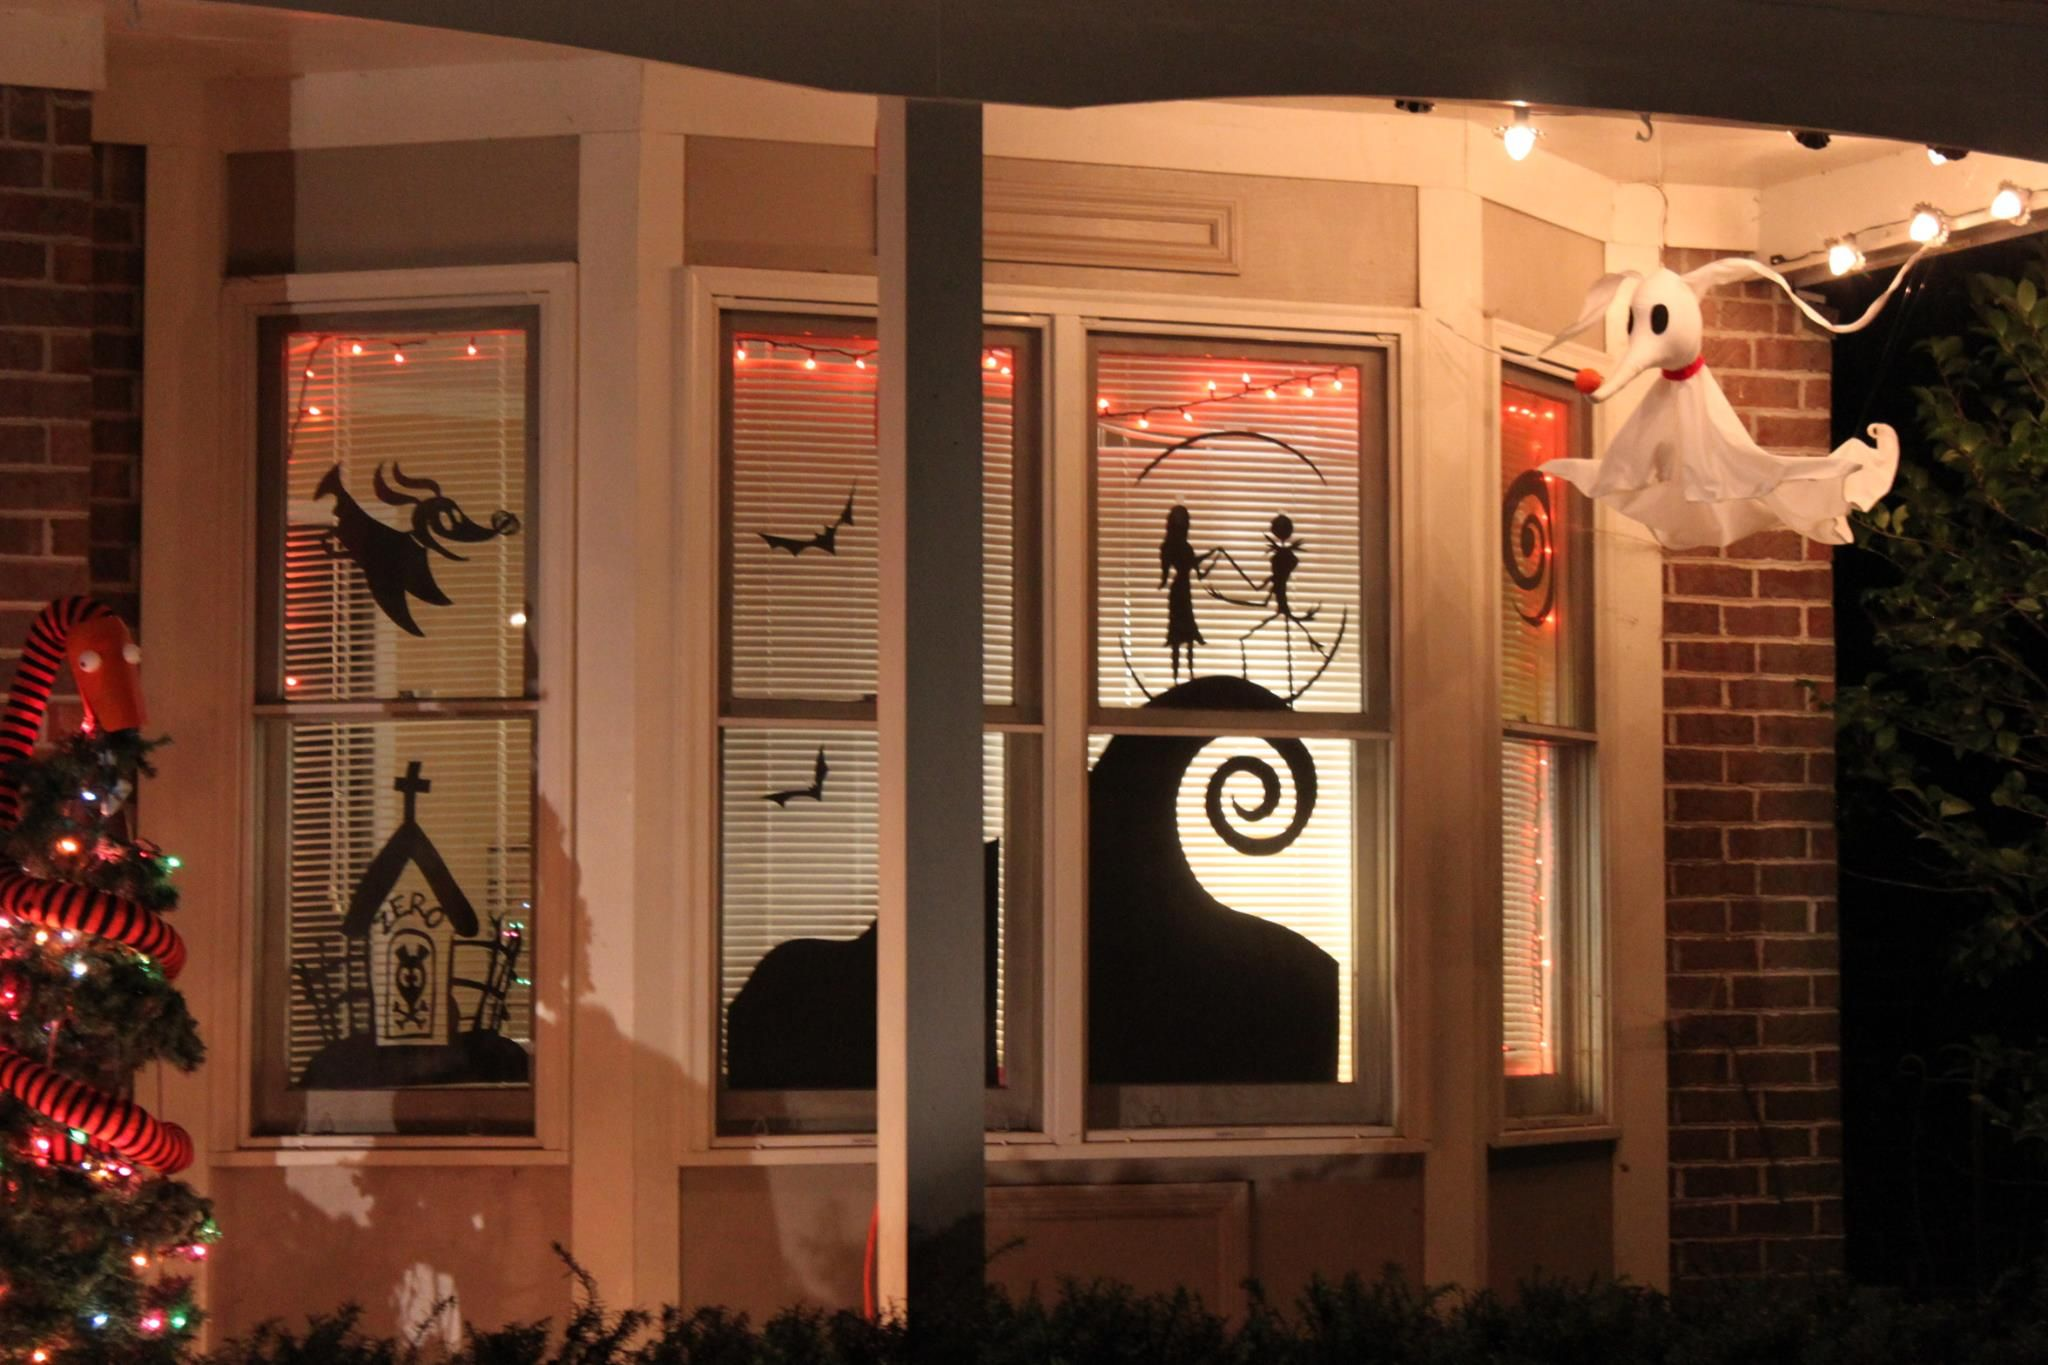 Nightmare Before Christmas Cut Outs Taped To The Window With A